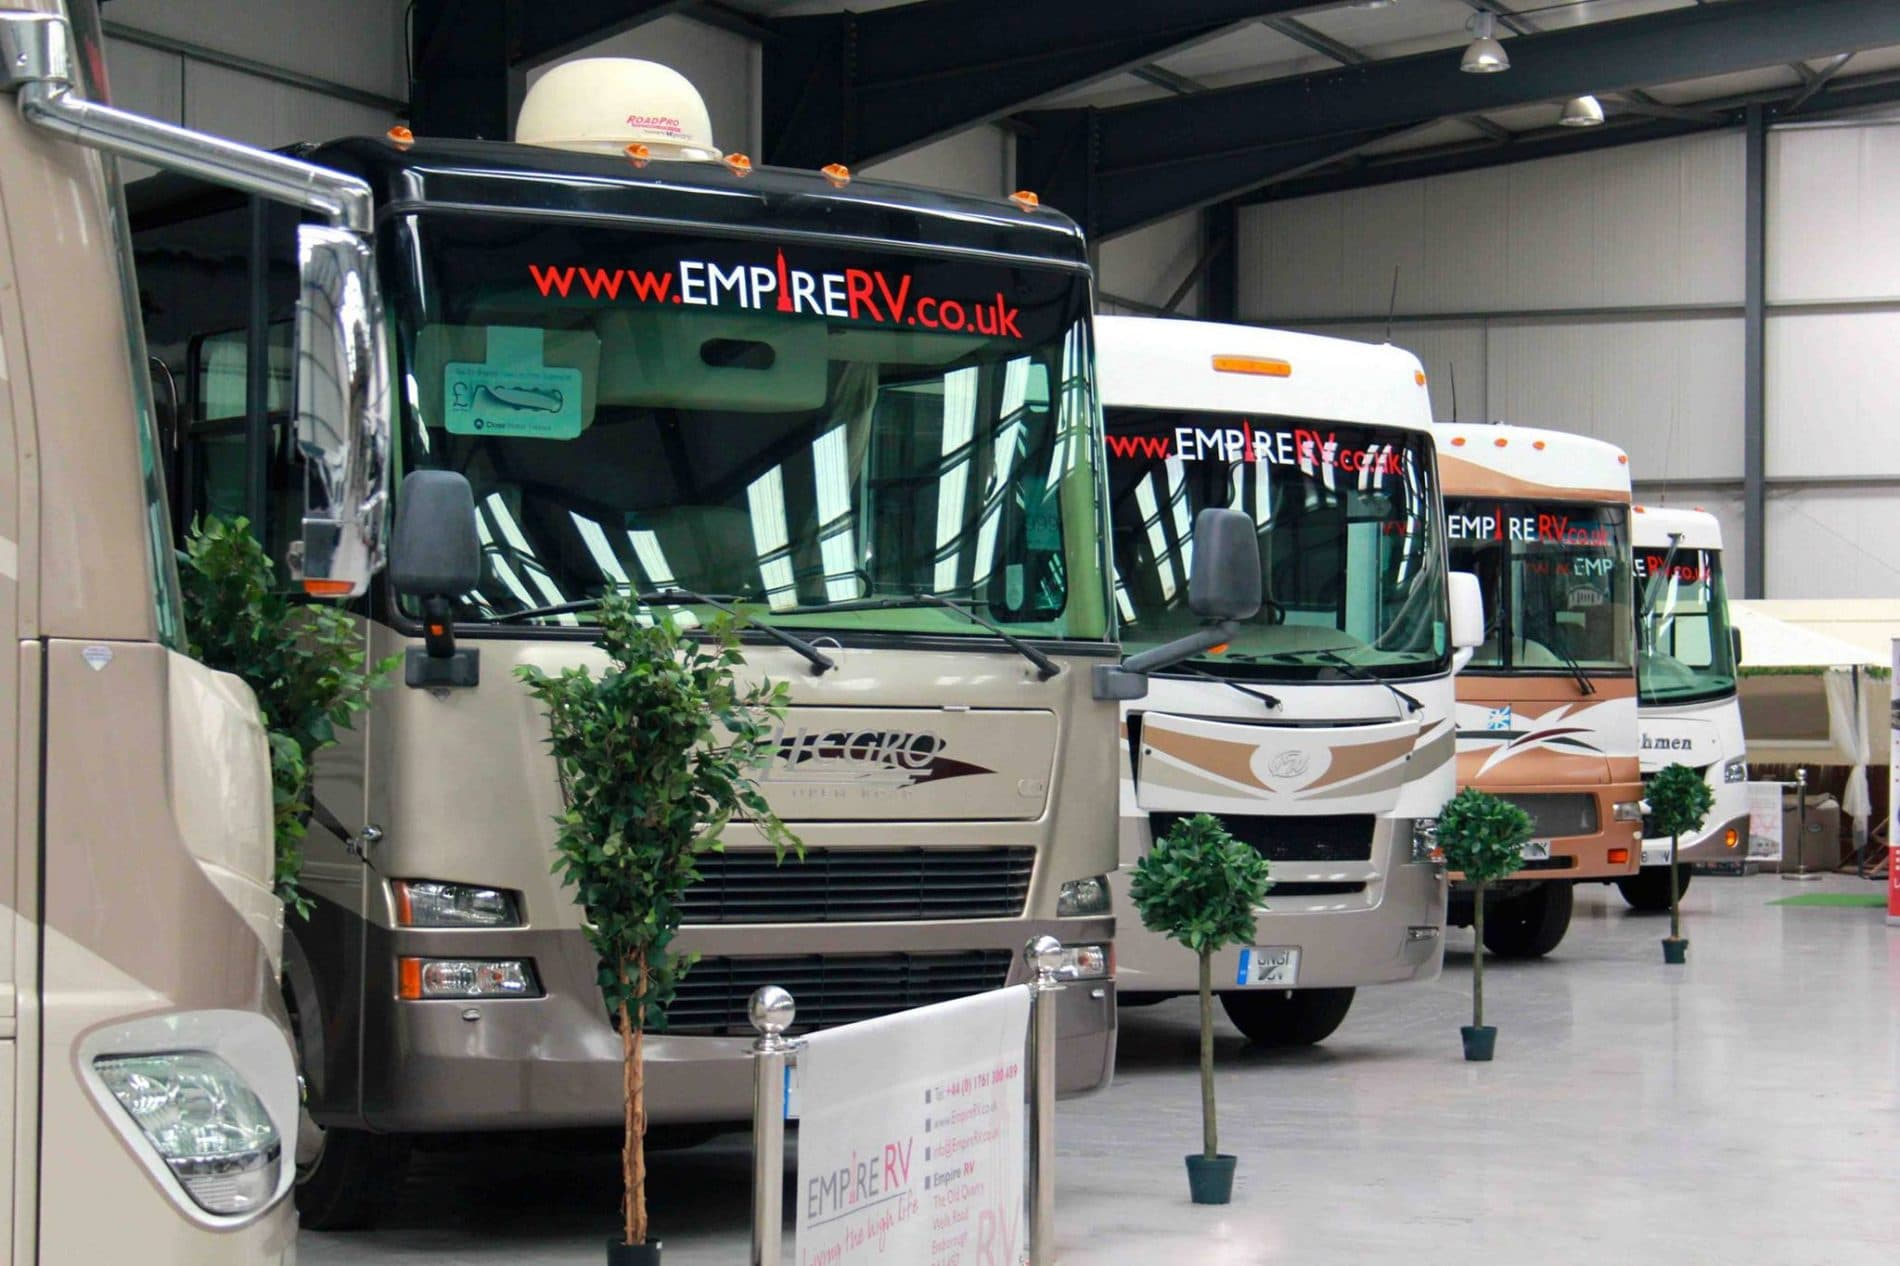 Cool Empire RV  Motorhome Amp RV Sales And Rental  Specialists You Can